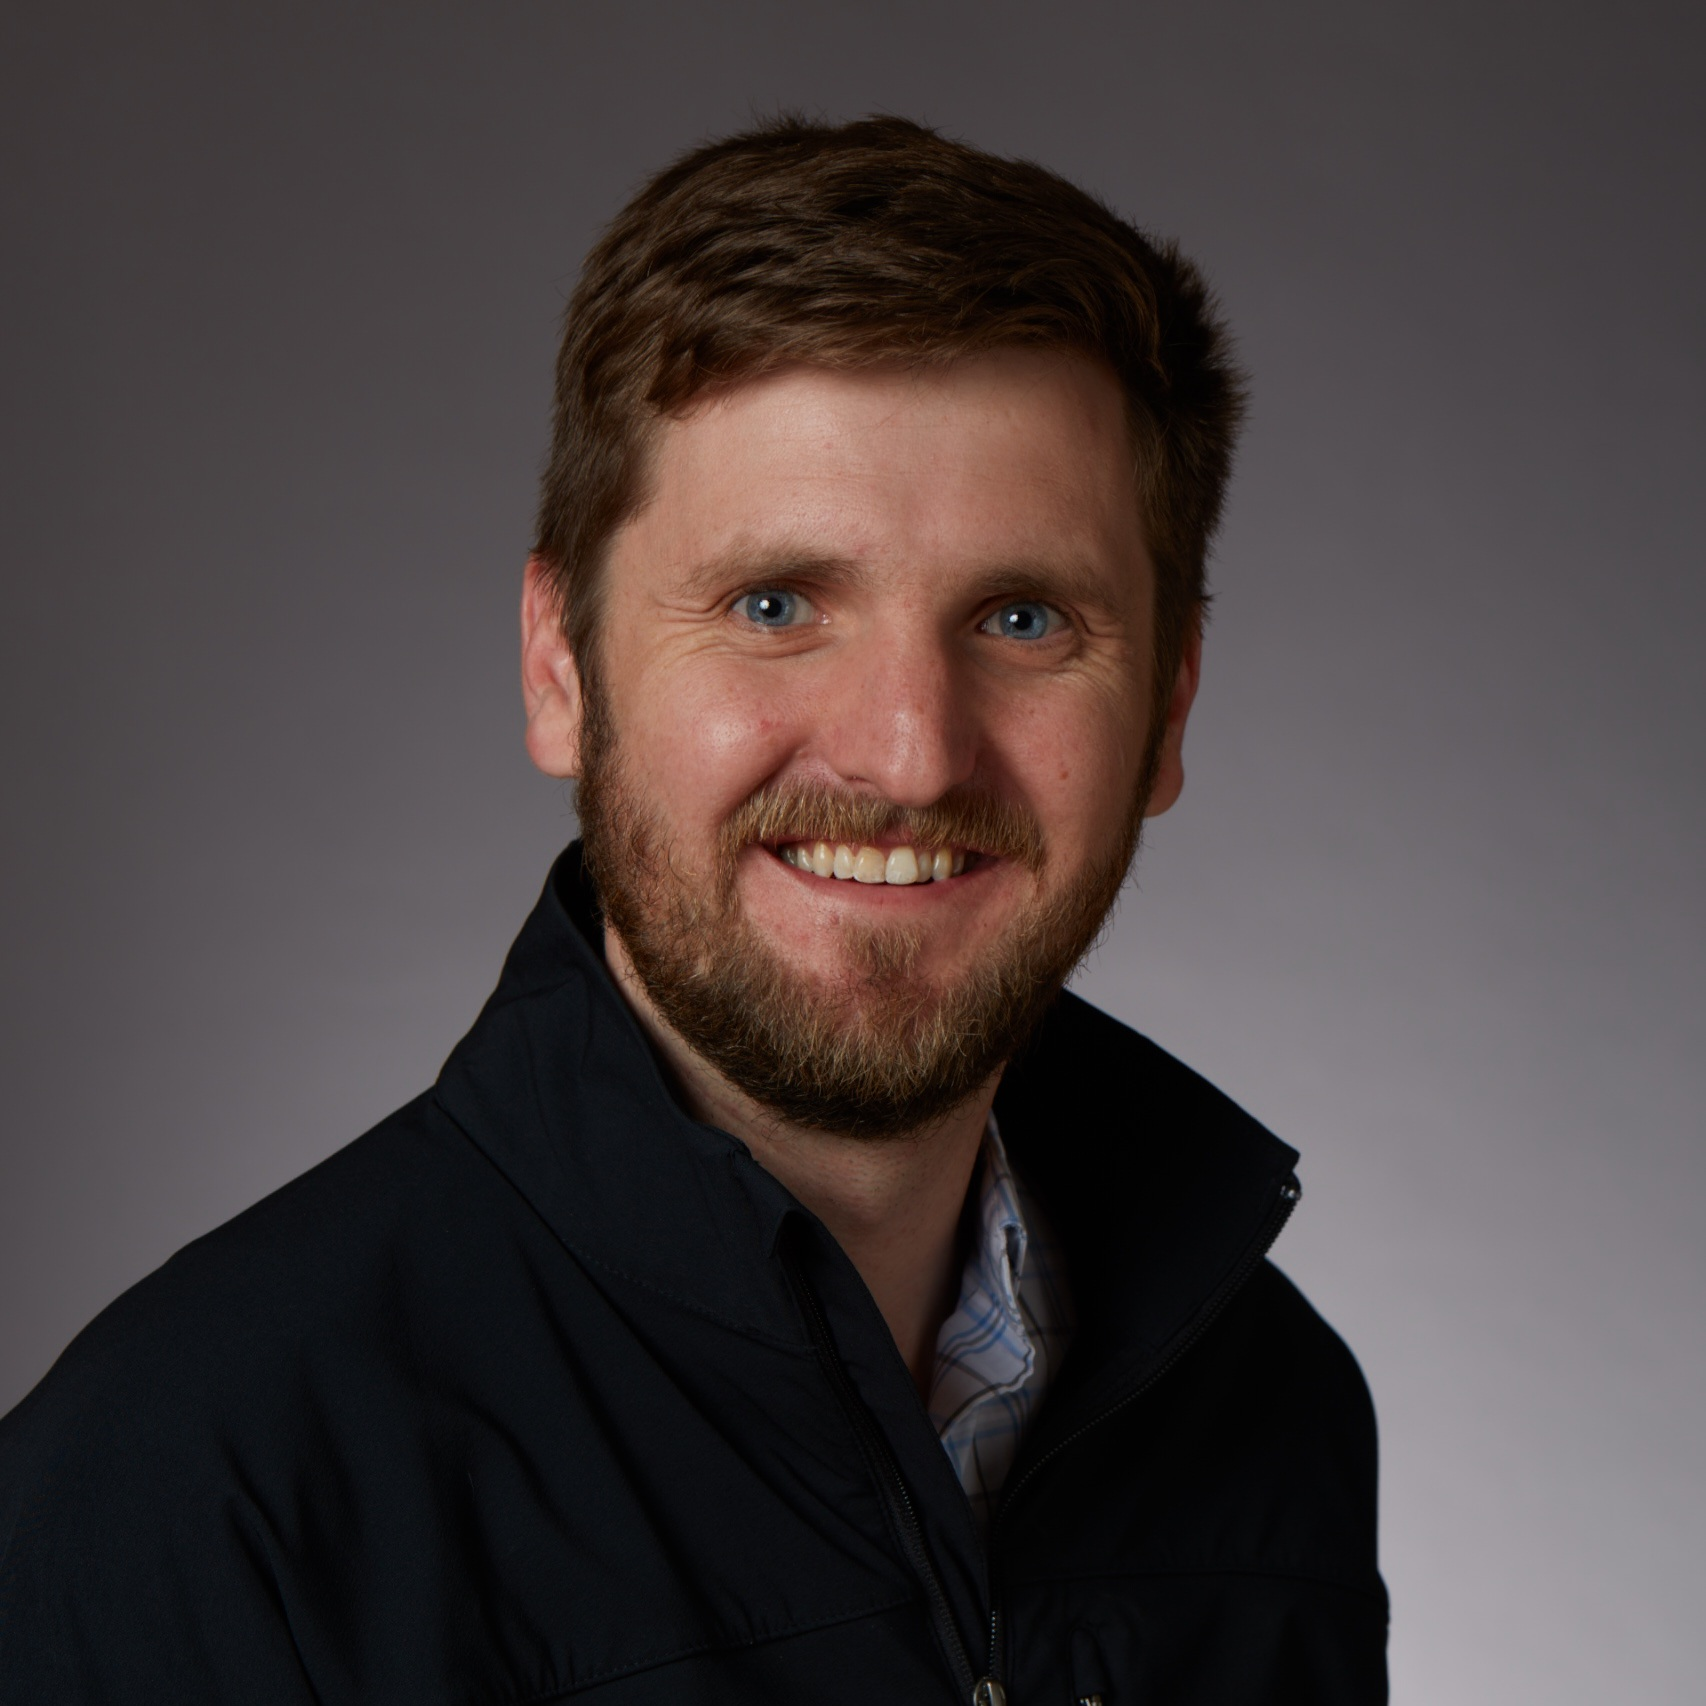 TedDY Hanford, Estimator - t.hanford@hanfordarc.comTeddy has been part of the Hanford team since 2003, beginning as a crew member. Now he is part of the Estimating department. His responsibilities include reviewing all plans, specs, and scopes for accuracy as well as finalizing pricing and presenting bids for submittal.